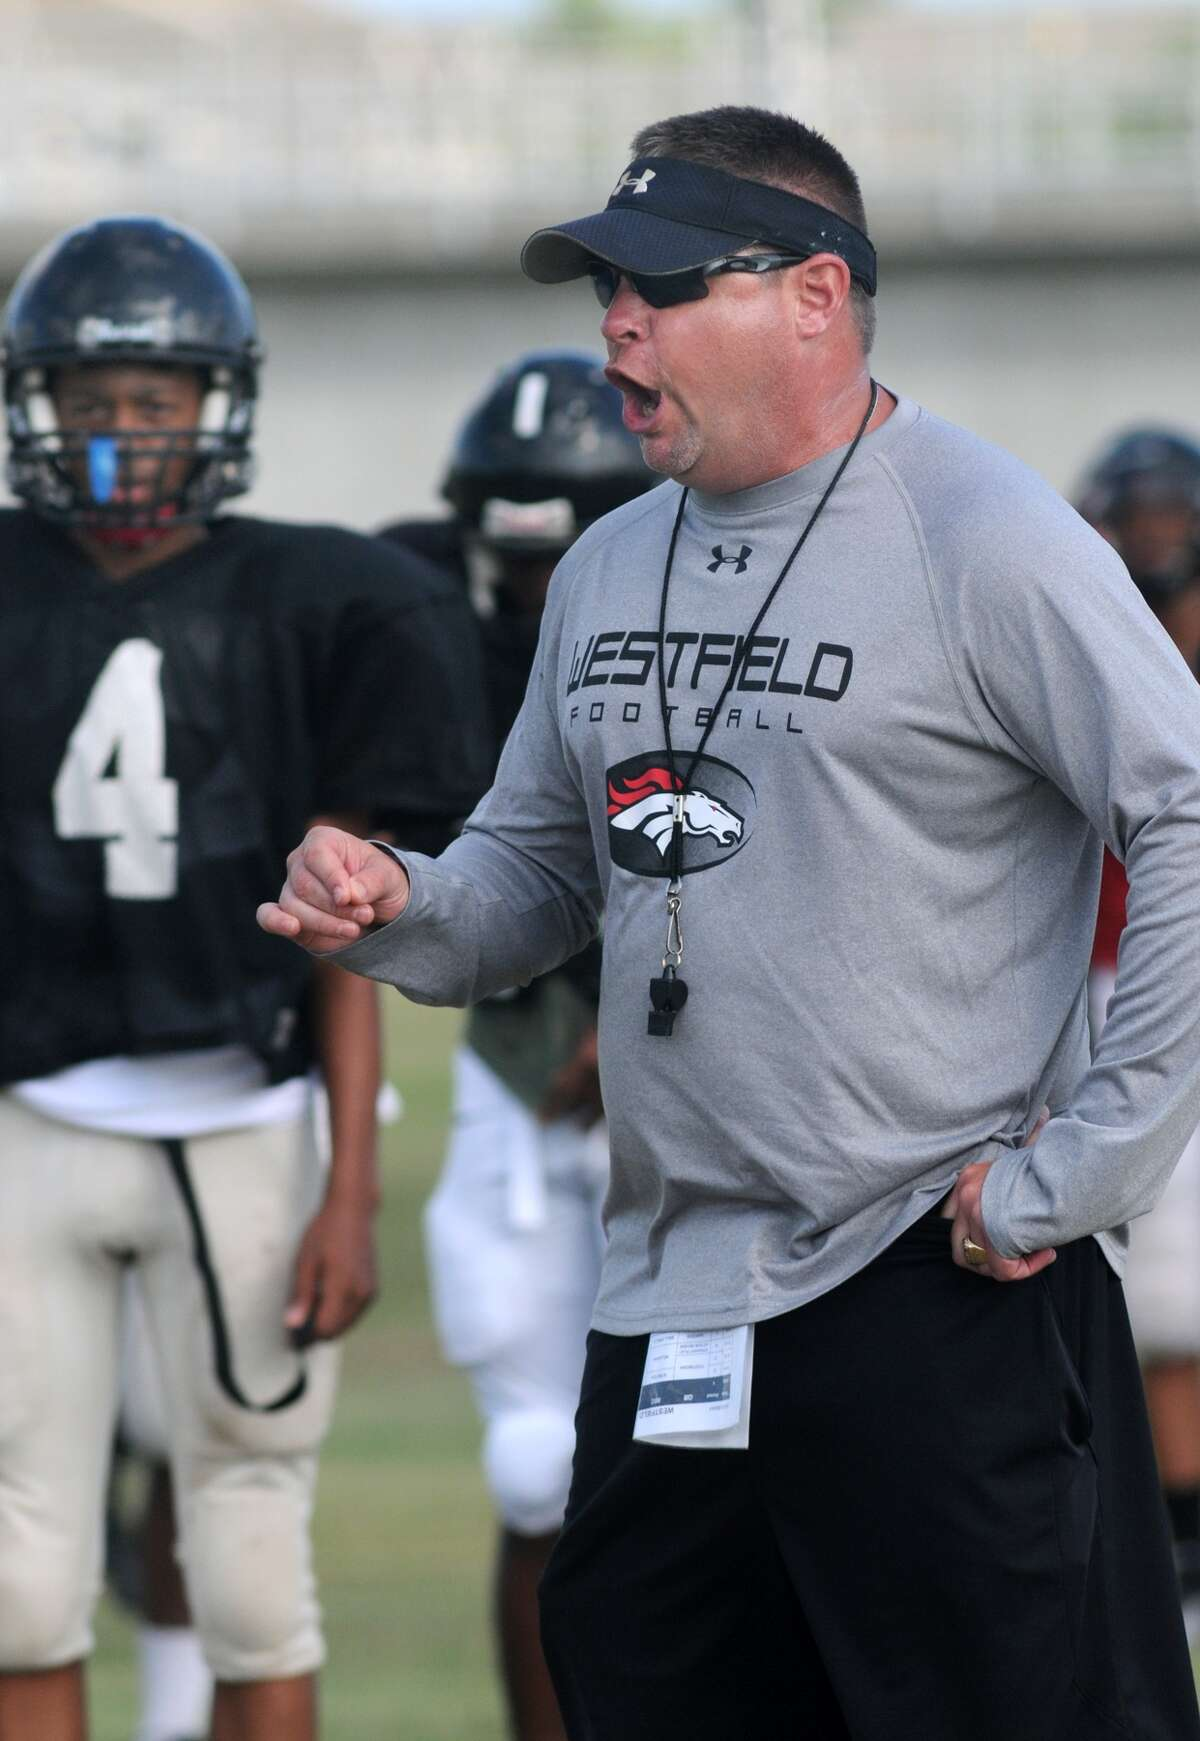 Westfield head coach Corby Meekins makes a point during practice.